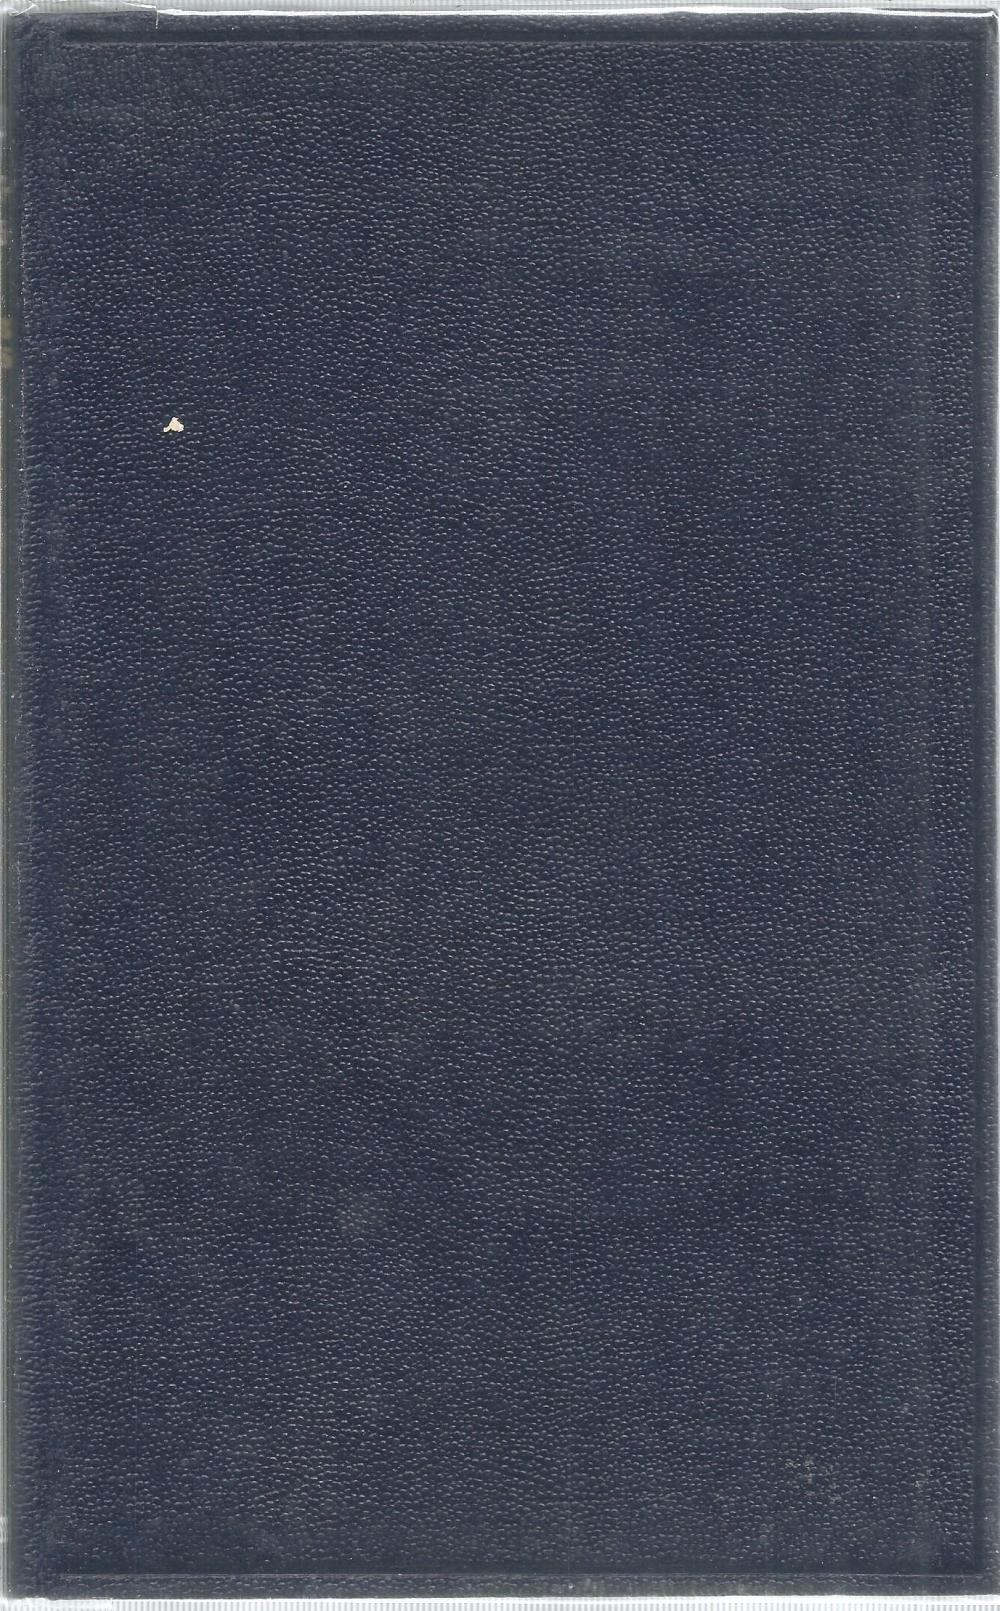 Great Expectations by Charles Dickens. Small softback book with clear dust cover published in 1970